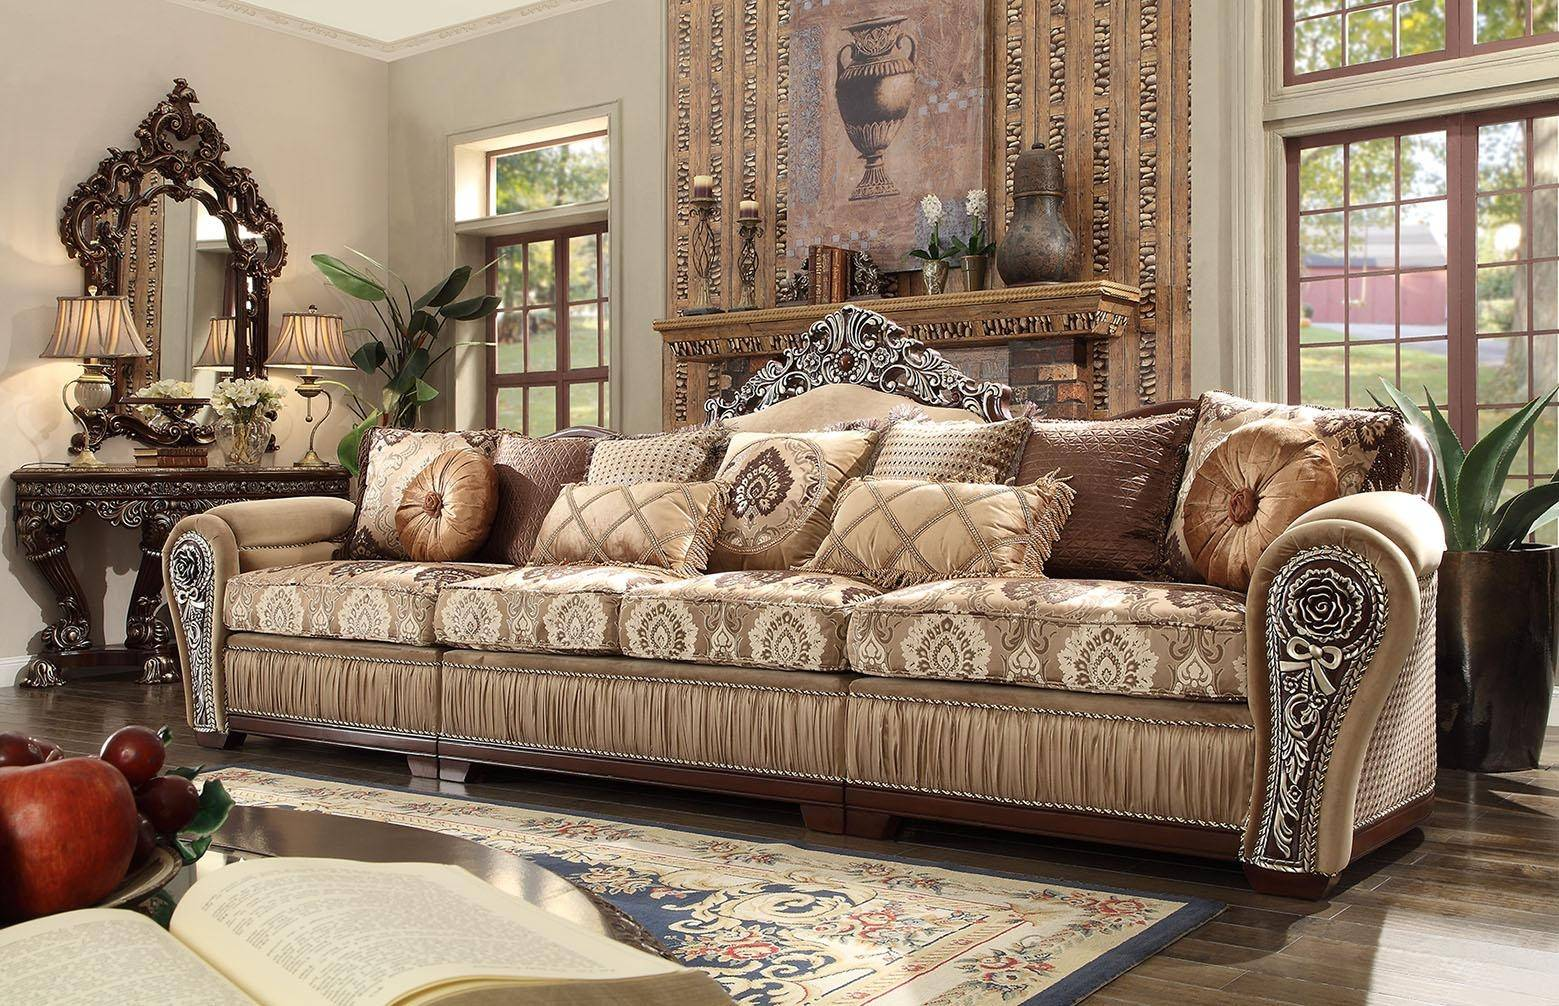 Incredible Homey Design Hd 1632 Victorian Upholstery Desert Sand Squirreltailoven Fun Painted Chair Ideas Images Squirreltailovenorg